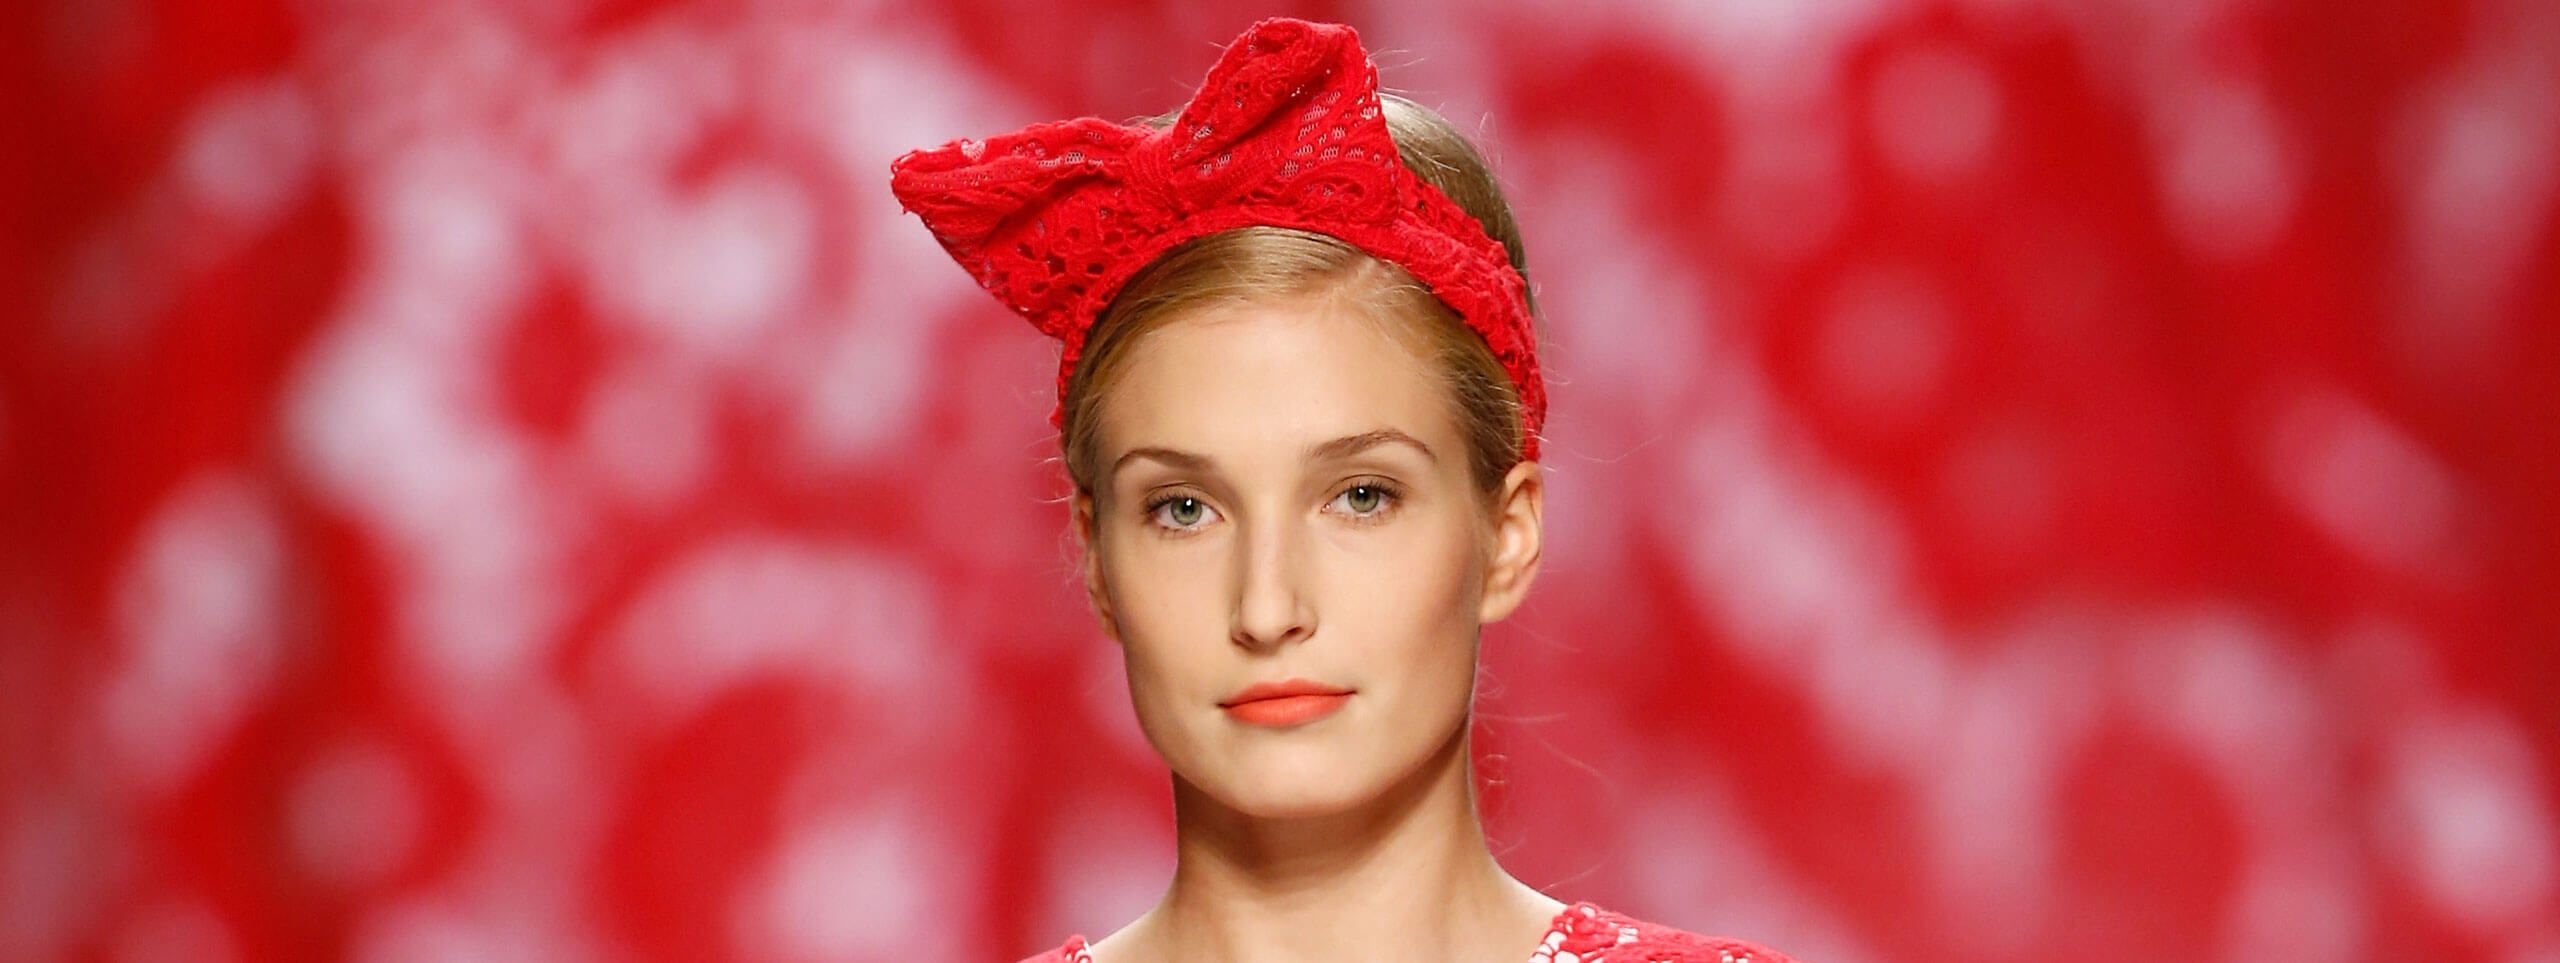 Model completes updo hairstyle with red bow headband